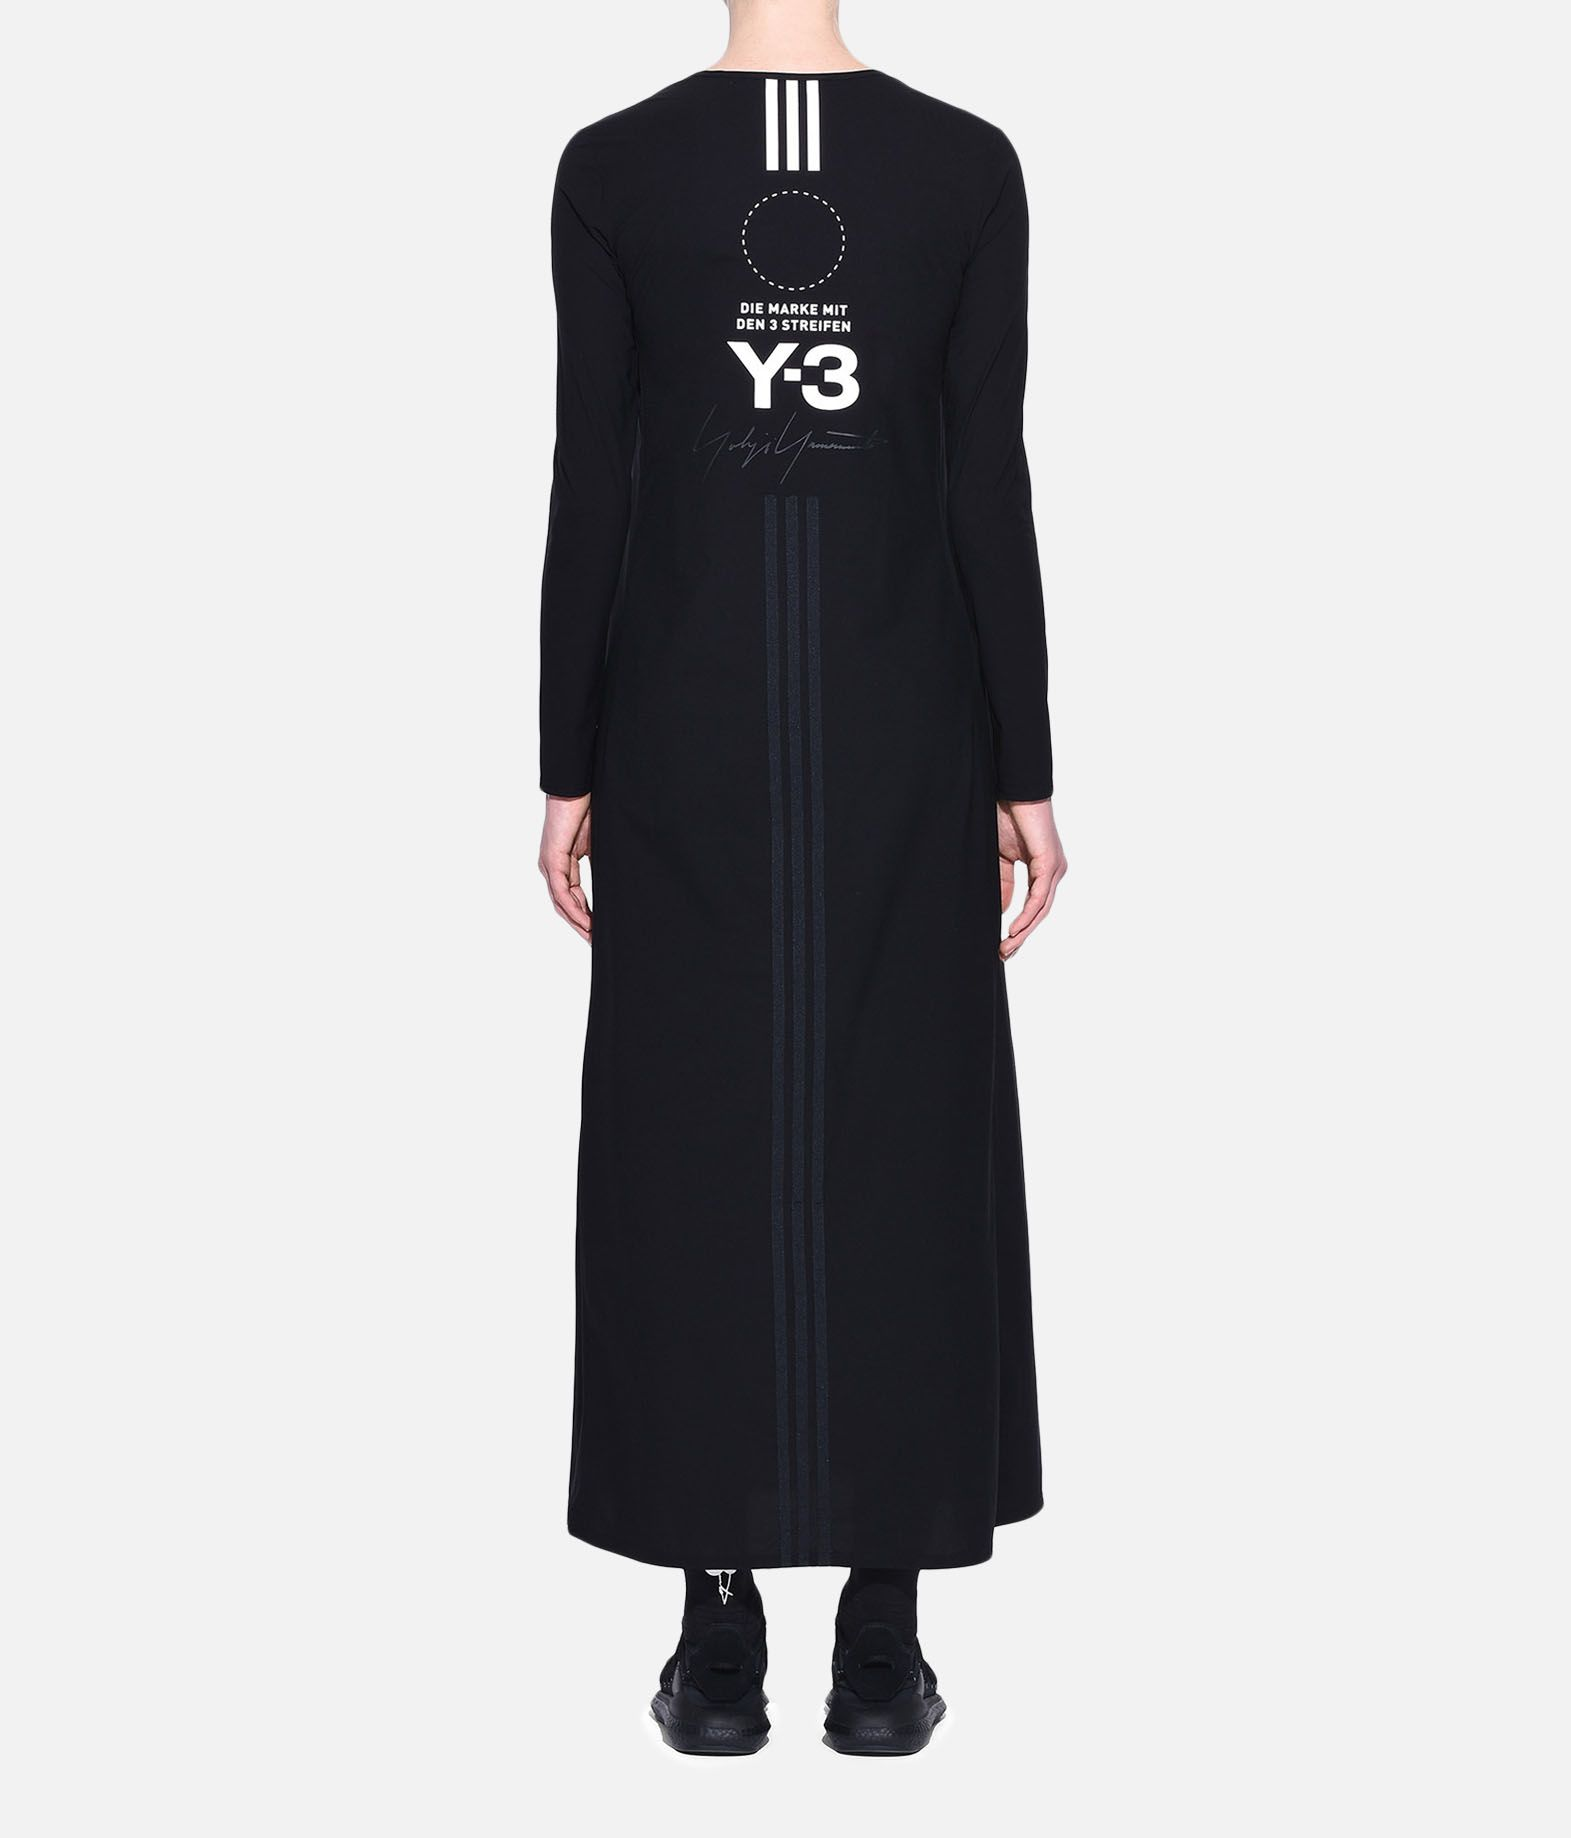 Y-3 Y-3 Stacked Logo Dress Vestito lungo Donna d